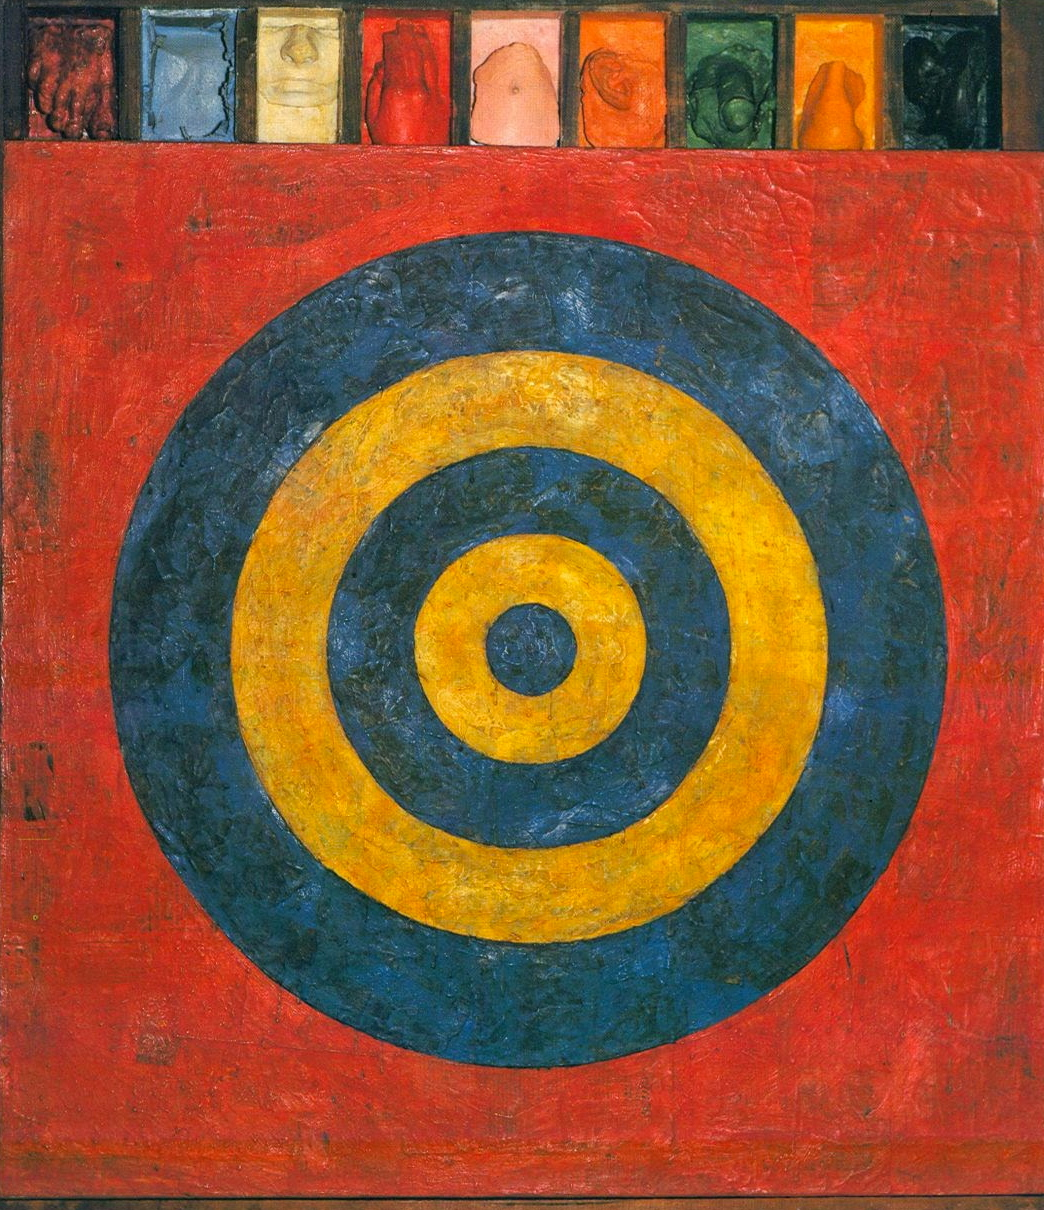 Jasper Johns : Target with Plaster Casts, 1955